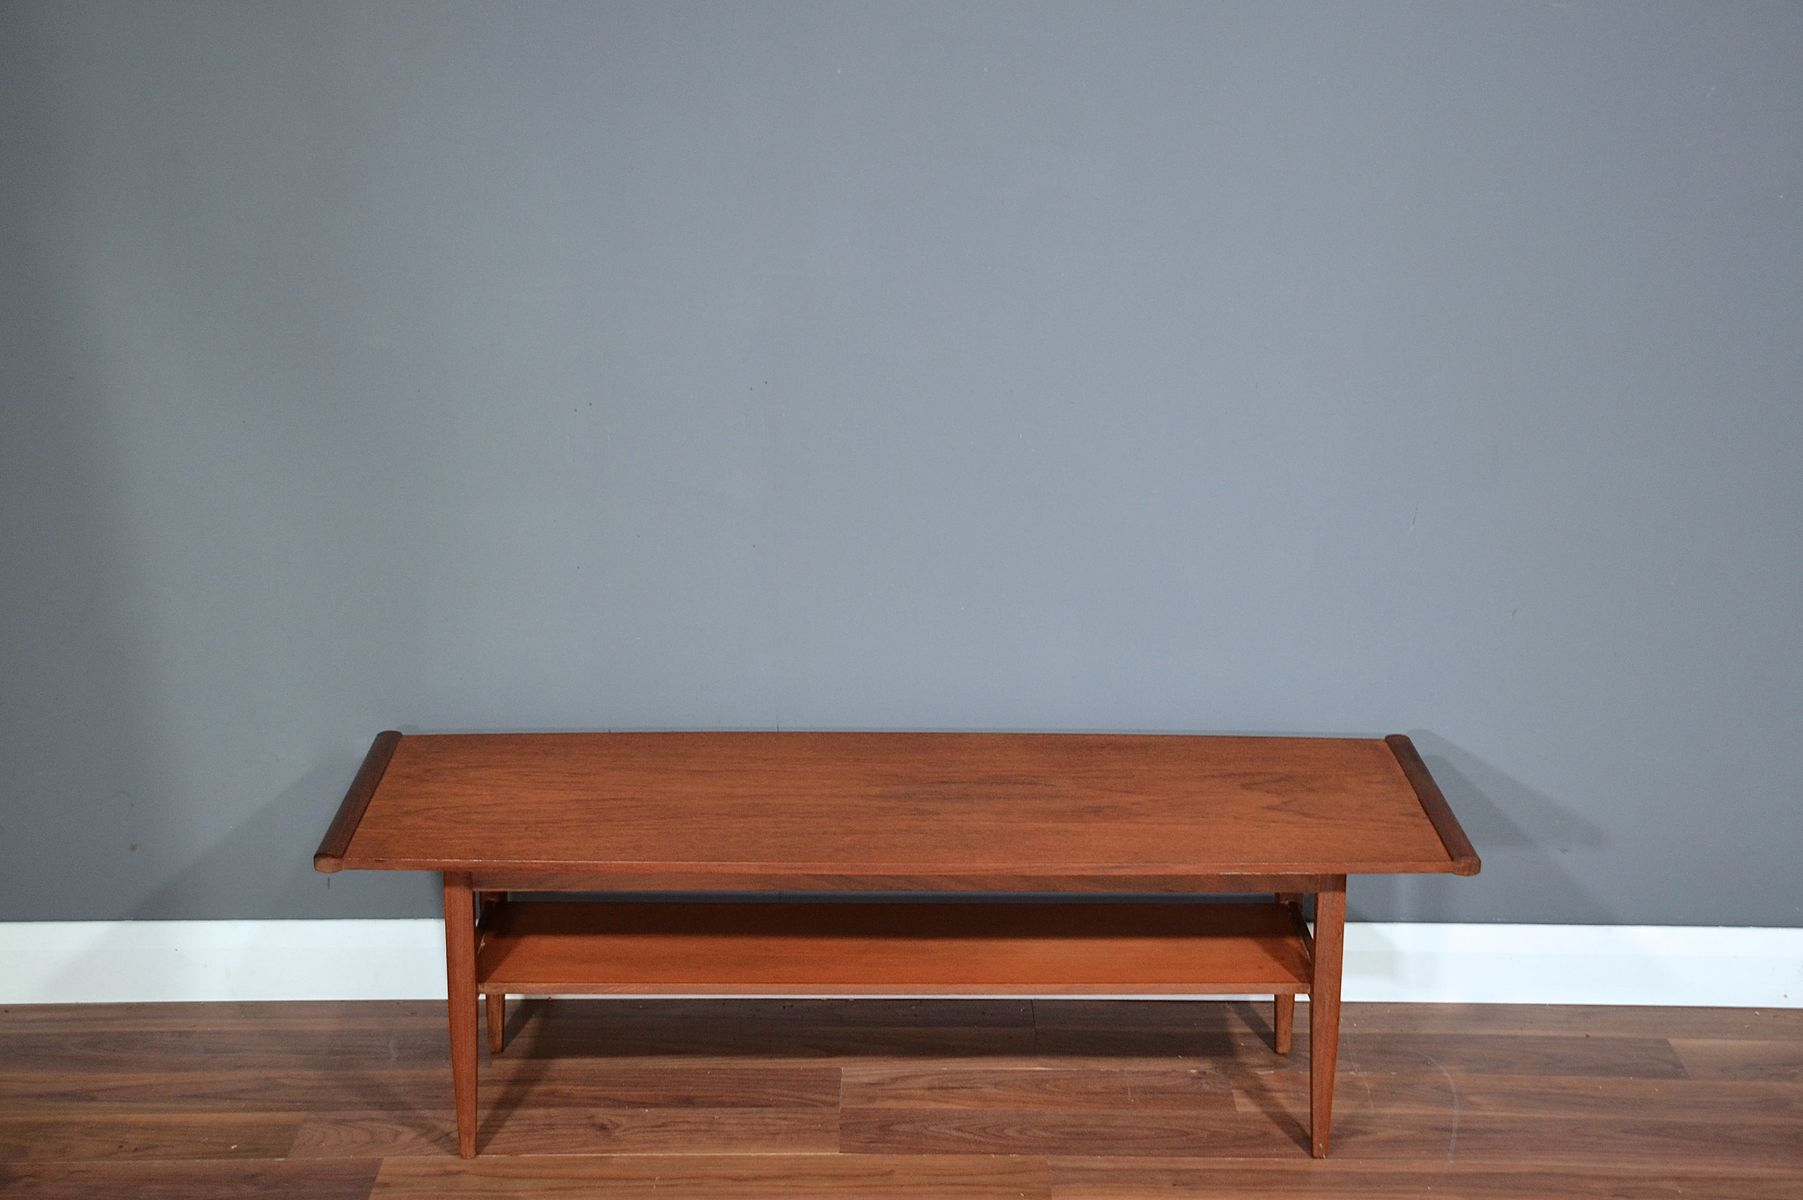 British TwoTier Coffee Table In Teak From Myer S For Sale At - Two level coffee table